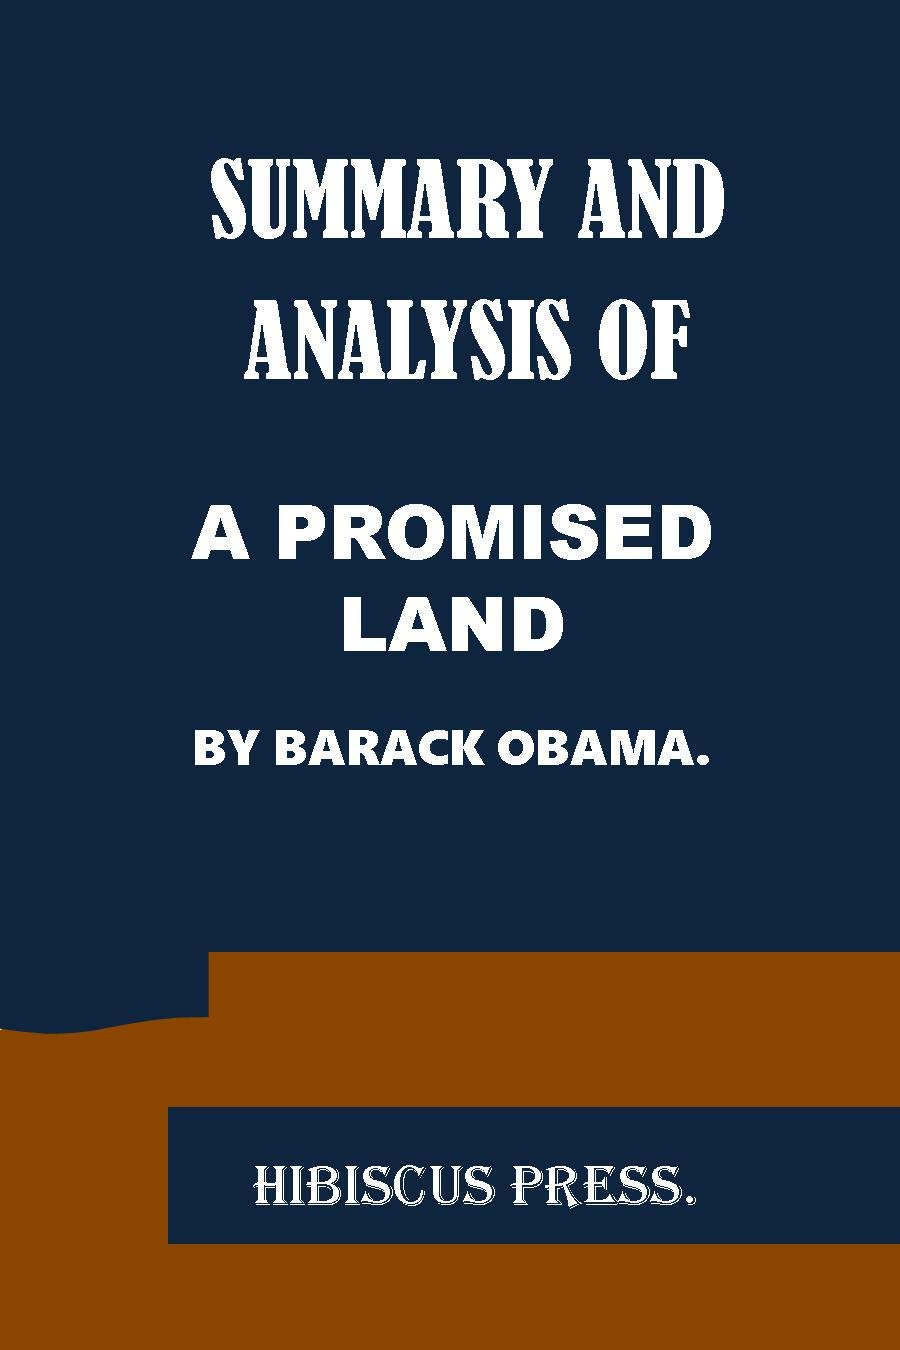 SUMMARY AND ANALYSIS OF A PROMISED LAND BY BARACK OBAMA: A Guide To The Book Of The 44th President Of The United States.